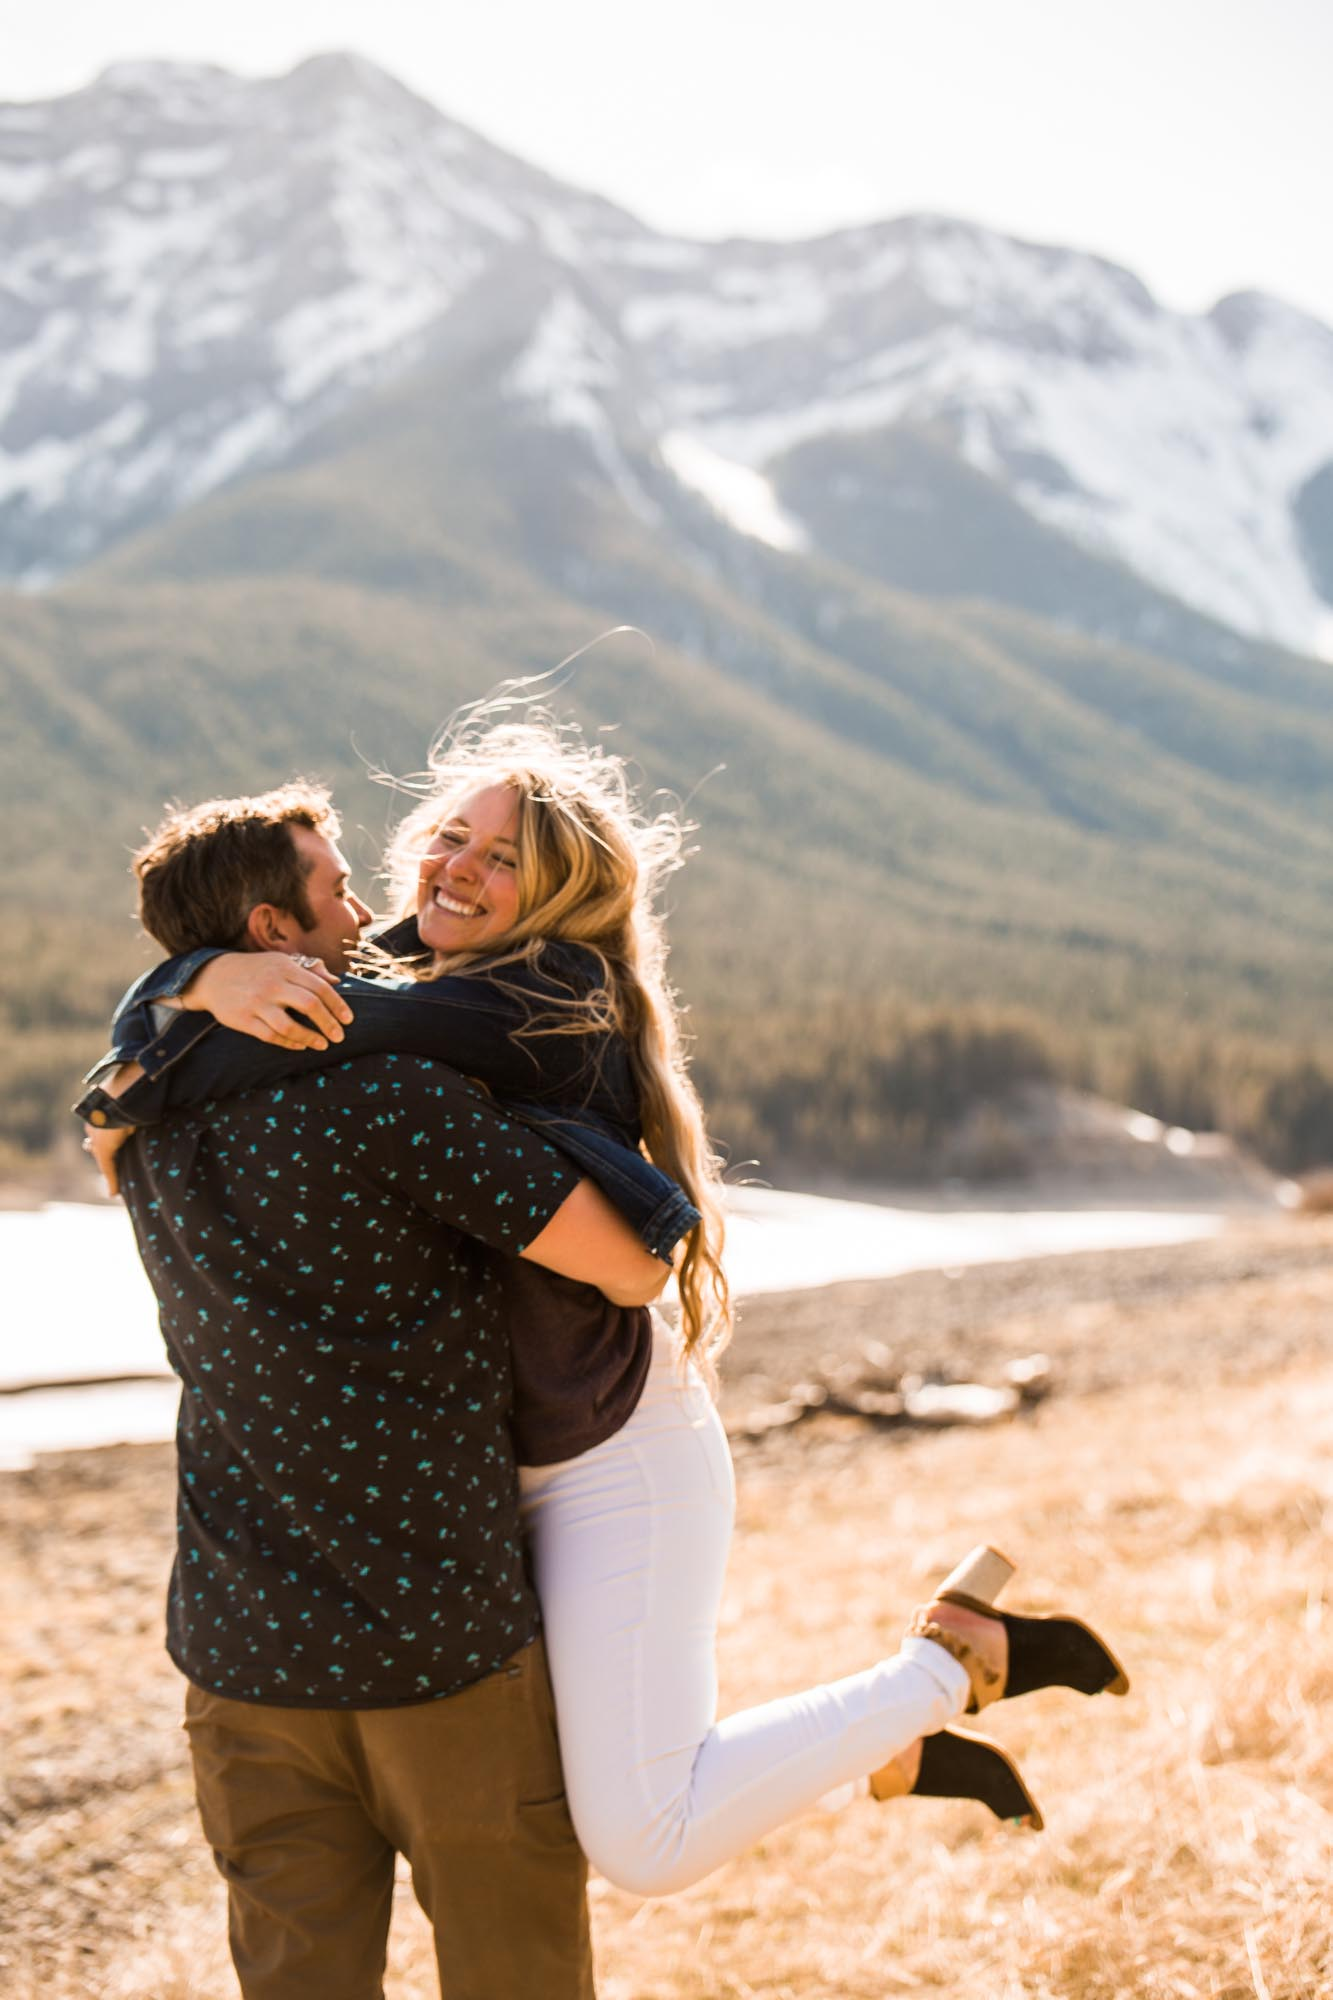 Calgary wedding photographer, engagement photos in a beautiful mountain location, couple in front of a mountain